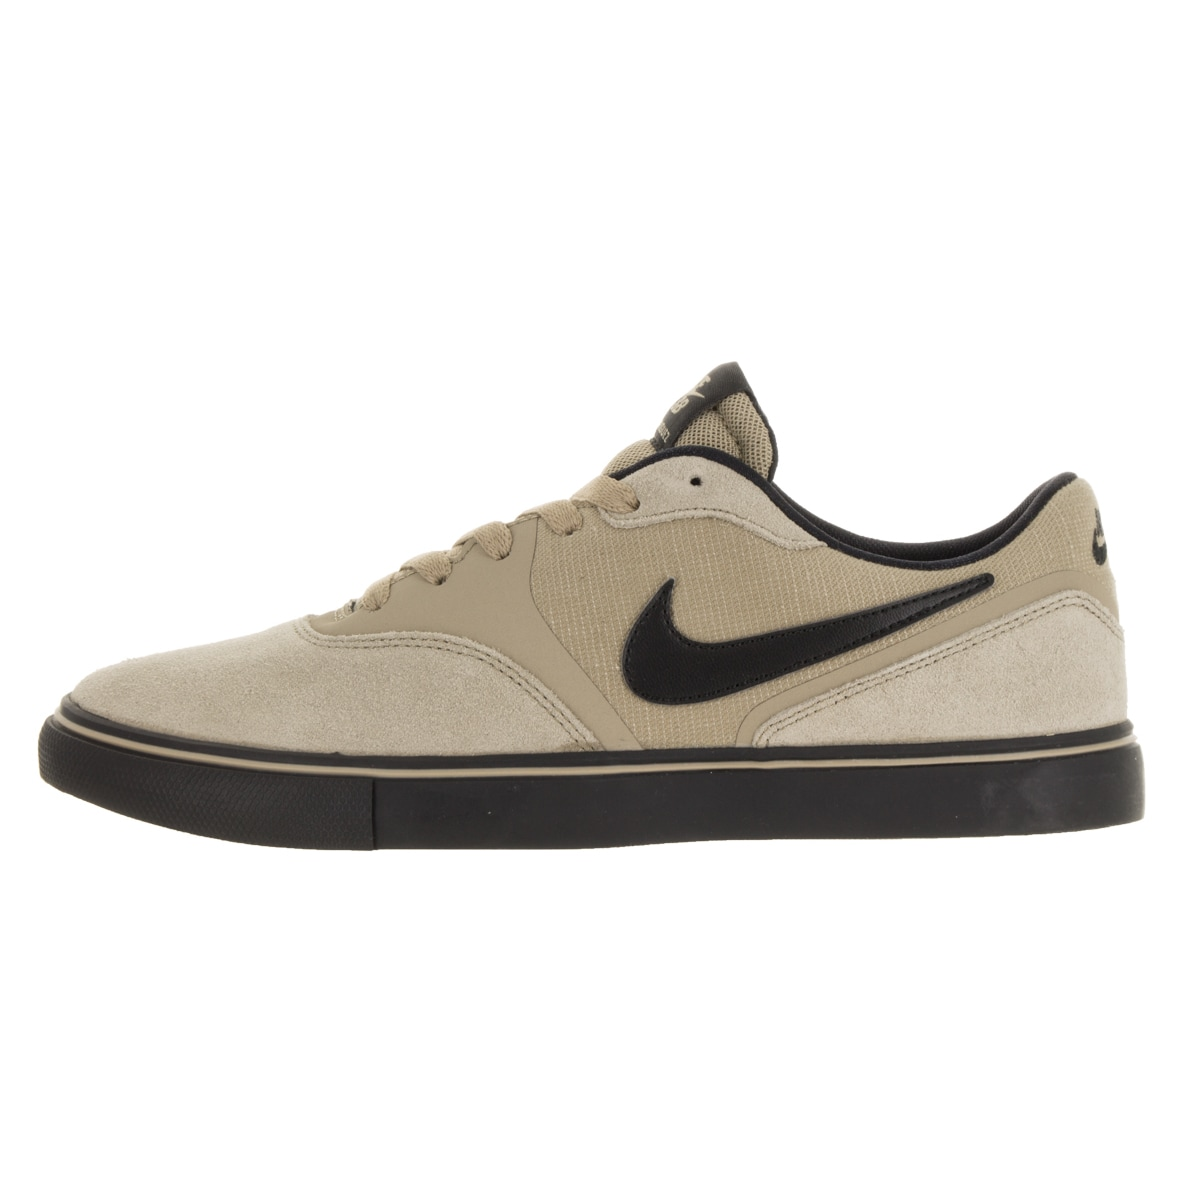 712403c407c64b Shop Nike Men s Paul Rodriguez 9 VR Khaki Black Black Light Bone Skate Shoe  - Free Shipping Today - Overstock - 13393997